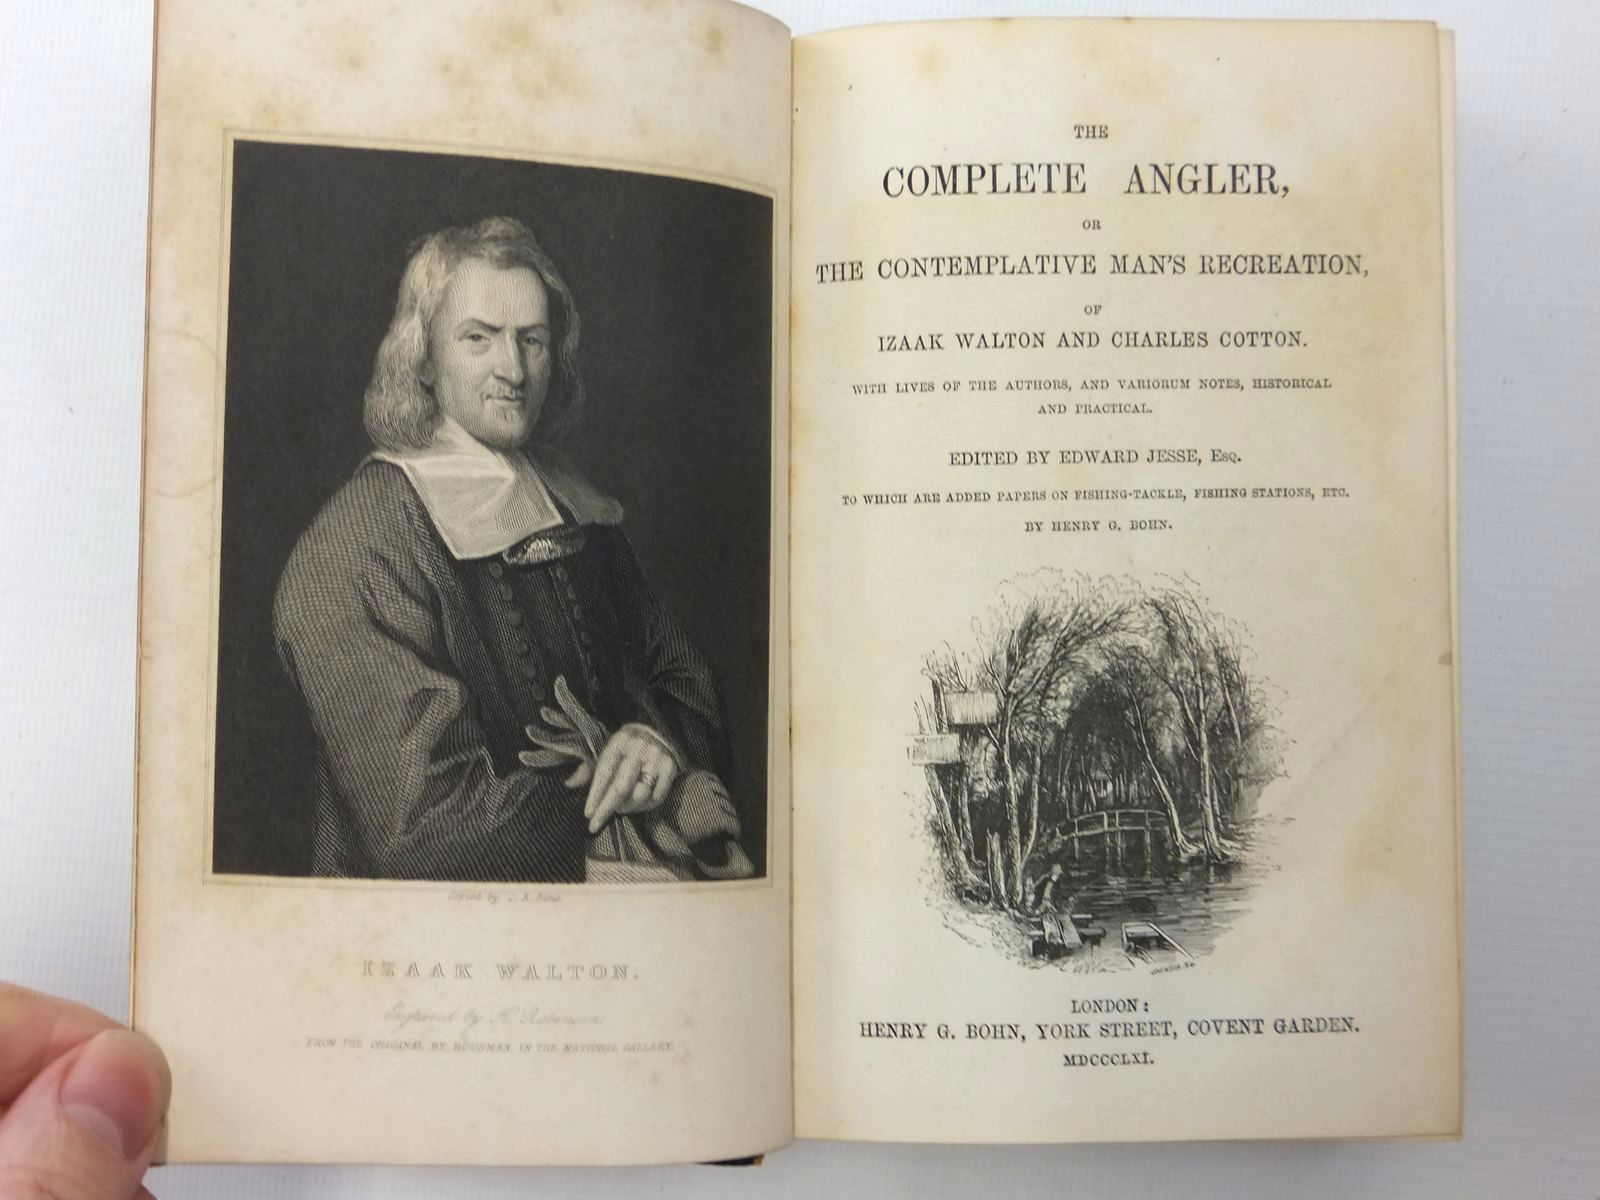 Photo of THE COMPLETE ANGLER, OR THE CONTEMPLATIVE MAN'S RECREATION written by Walton, Izaak Cotton, Charles Jesse, Edward published by Henry G. Bohn (STOCK CODE: 1814801)  for sale by Stella & Rose's Books